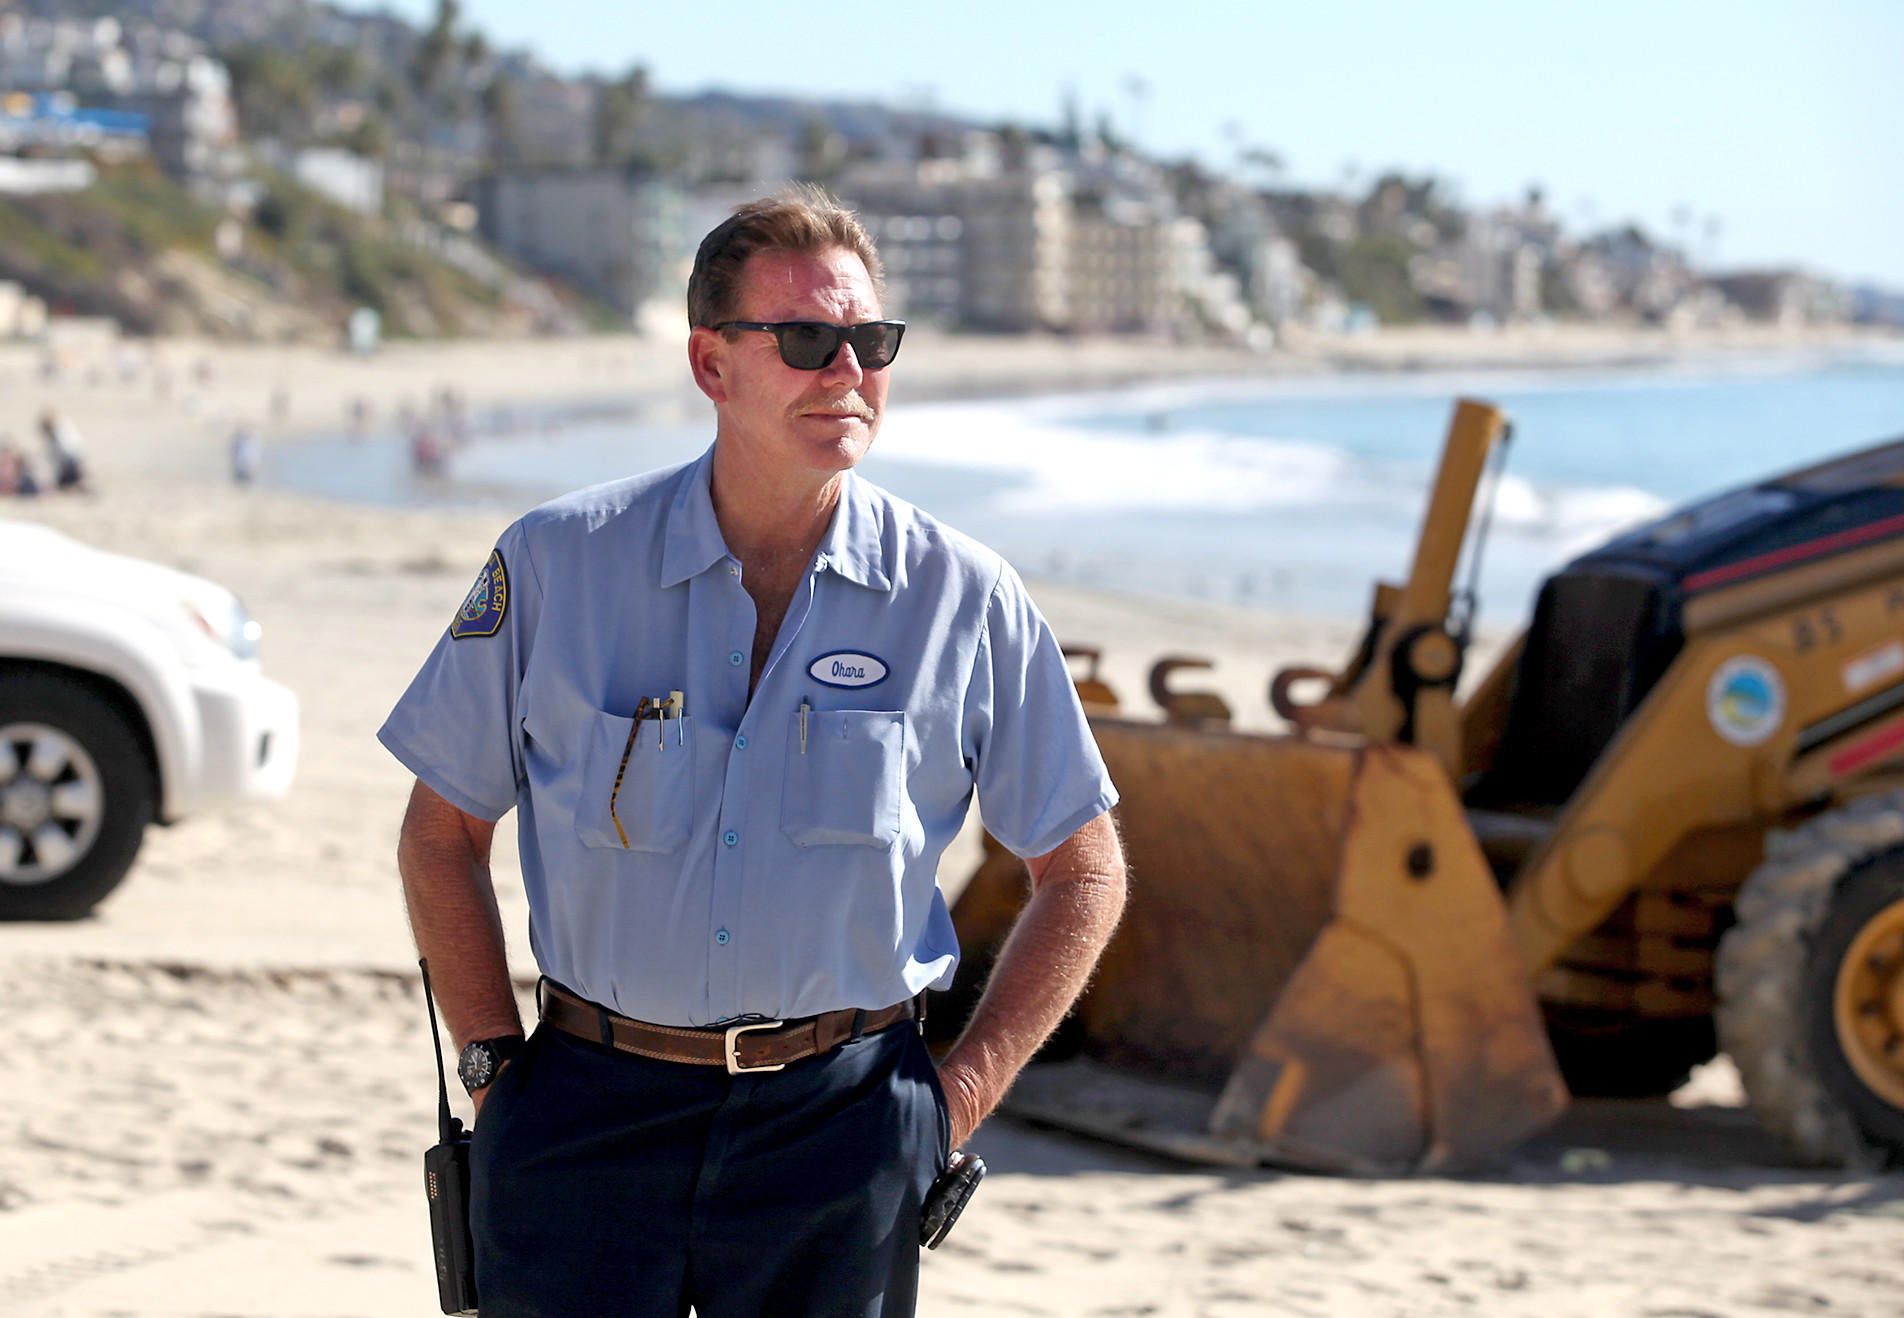 John O'Hara is retiring after 34 years on the job for the Laguna Beach Public Works department, working places like Main Beach, above.